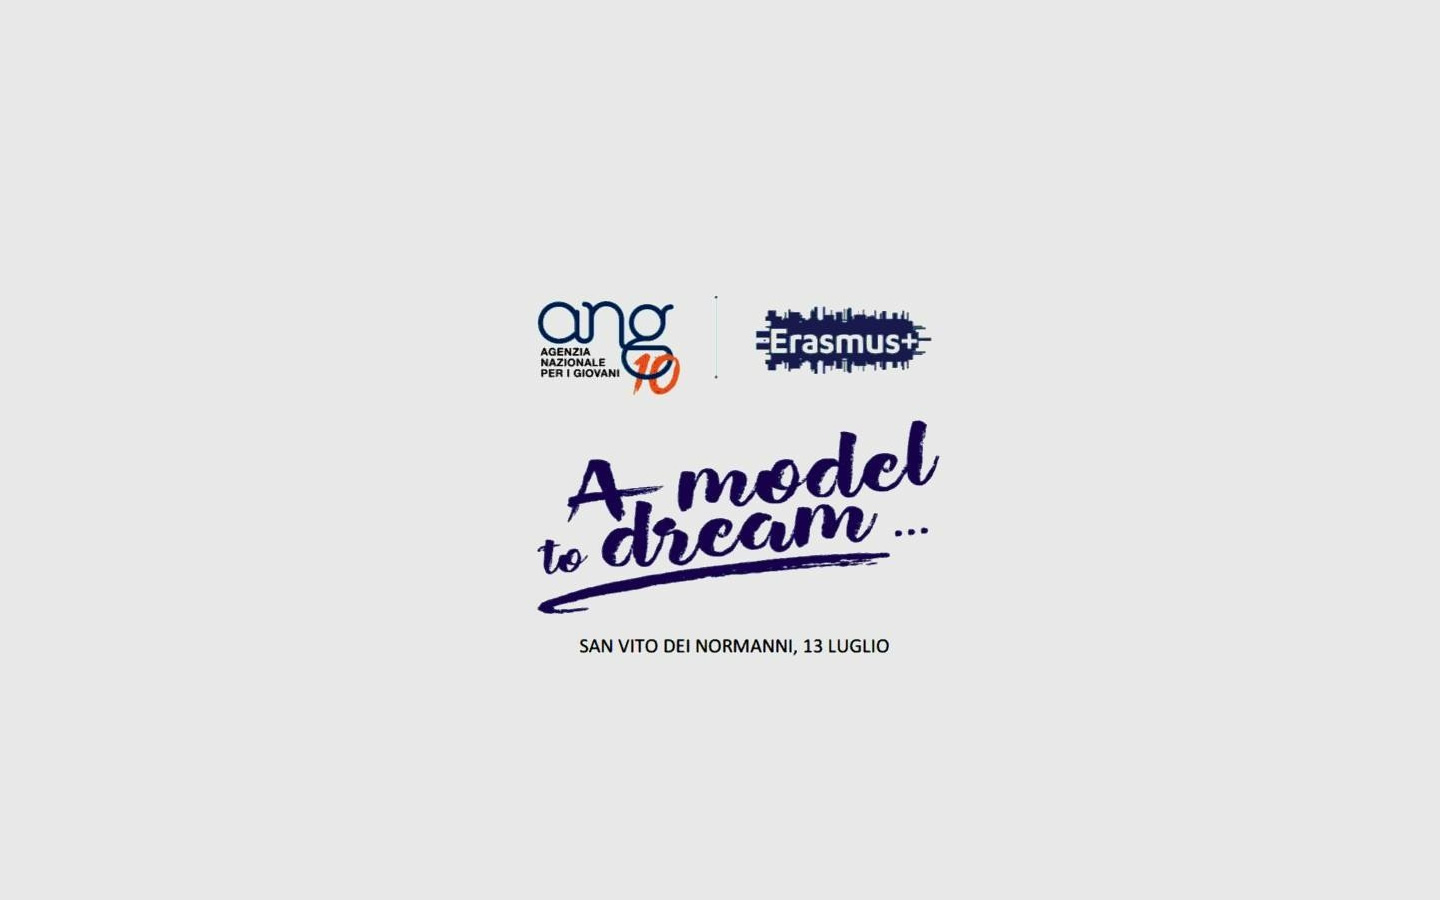 A model to dream, San Vito dei Normanni 13 luglio 2017